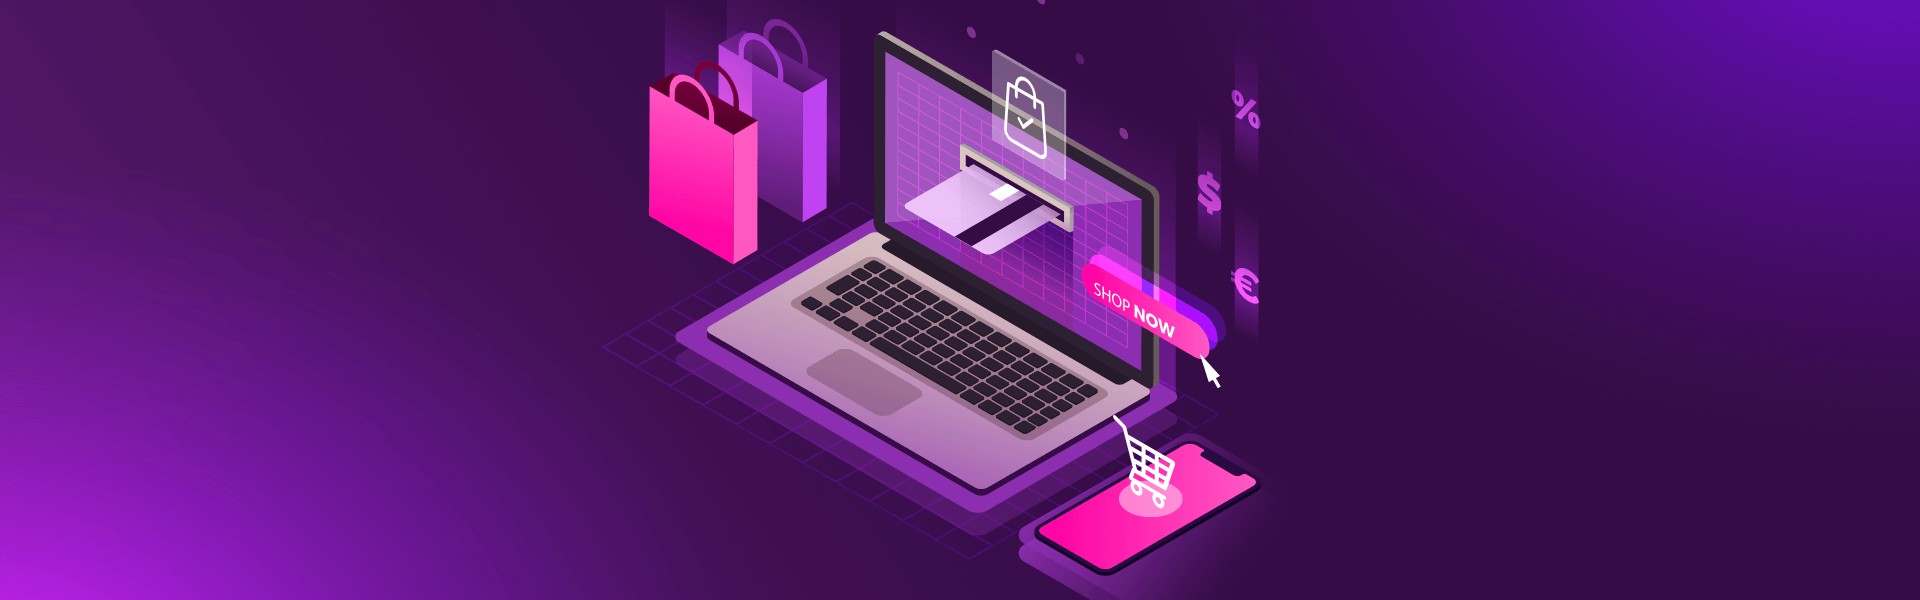 The-Guide-to-Ecommerce-Keywords-Lead-Genera